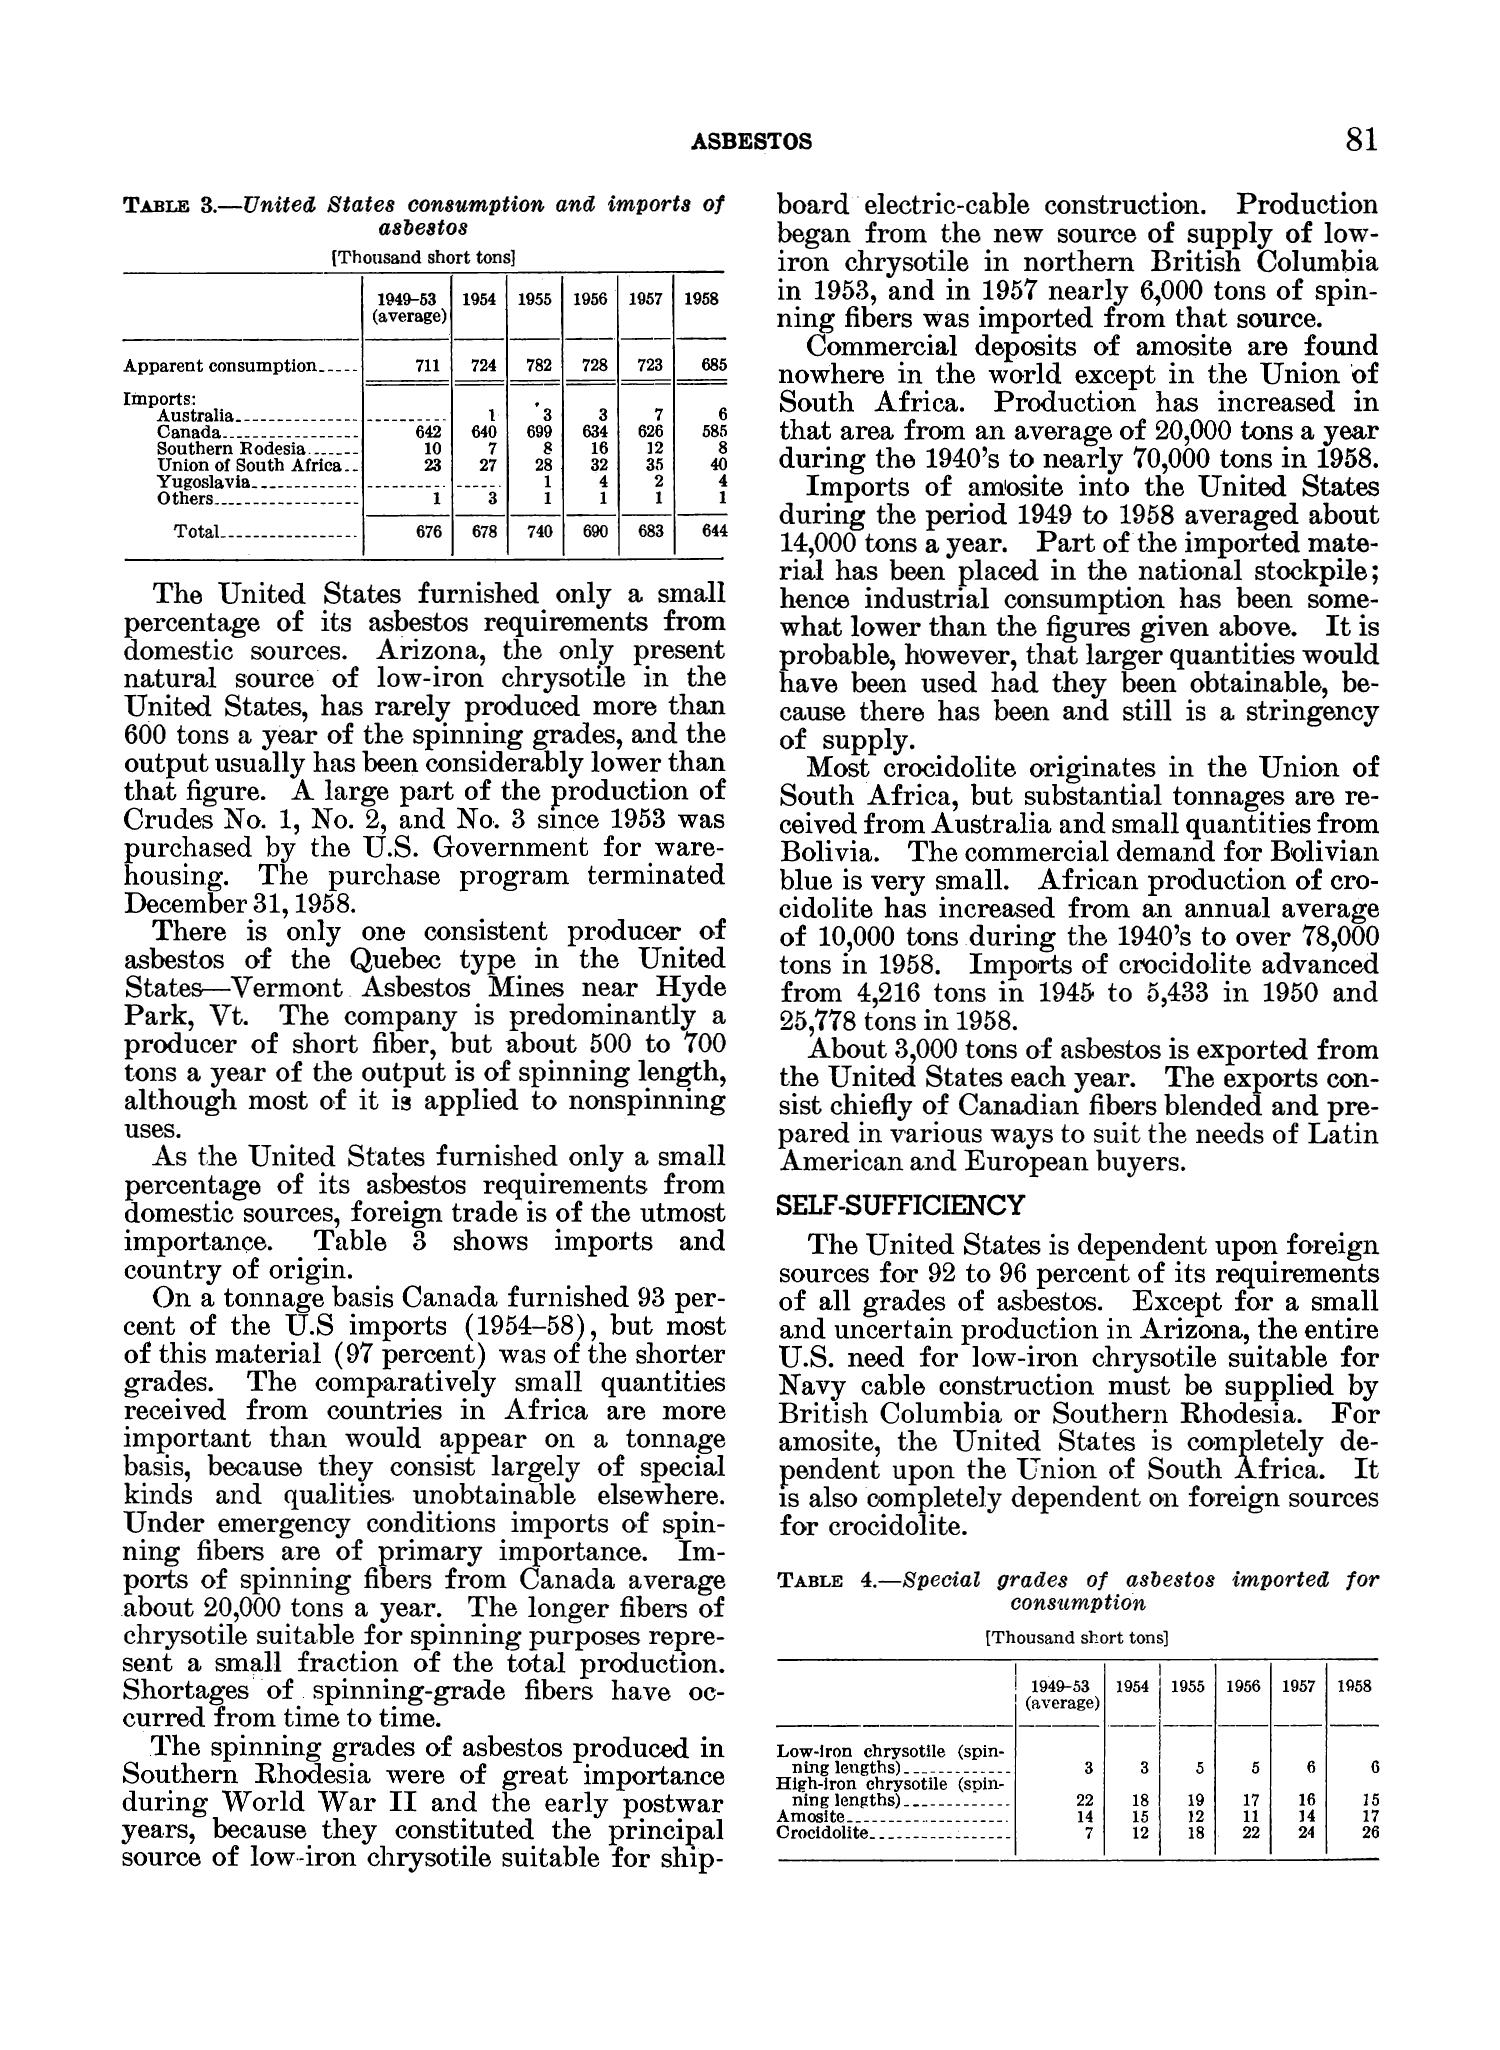 Mineral Facts and Problems: 1960 Edition                                                                                                      81